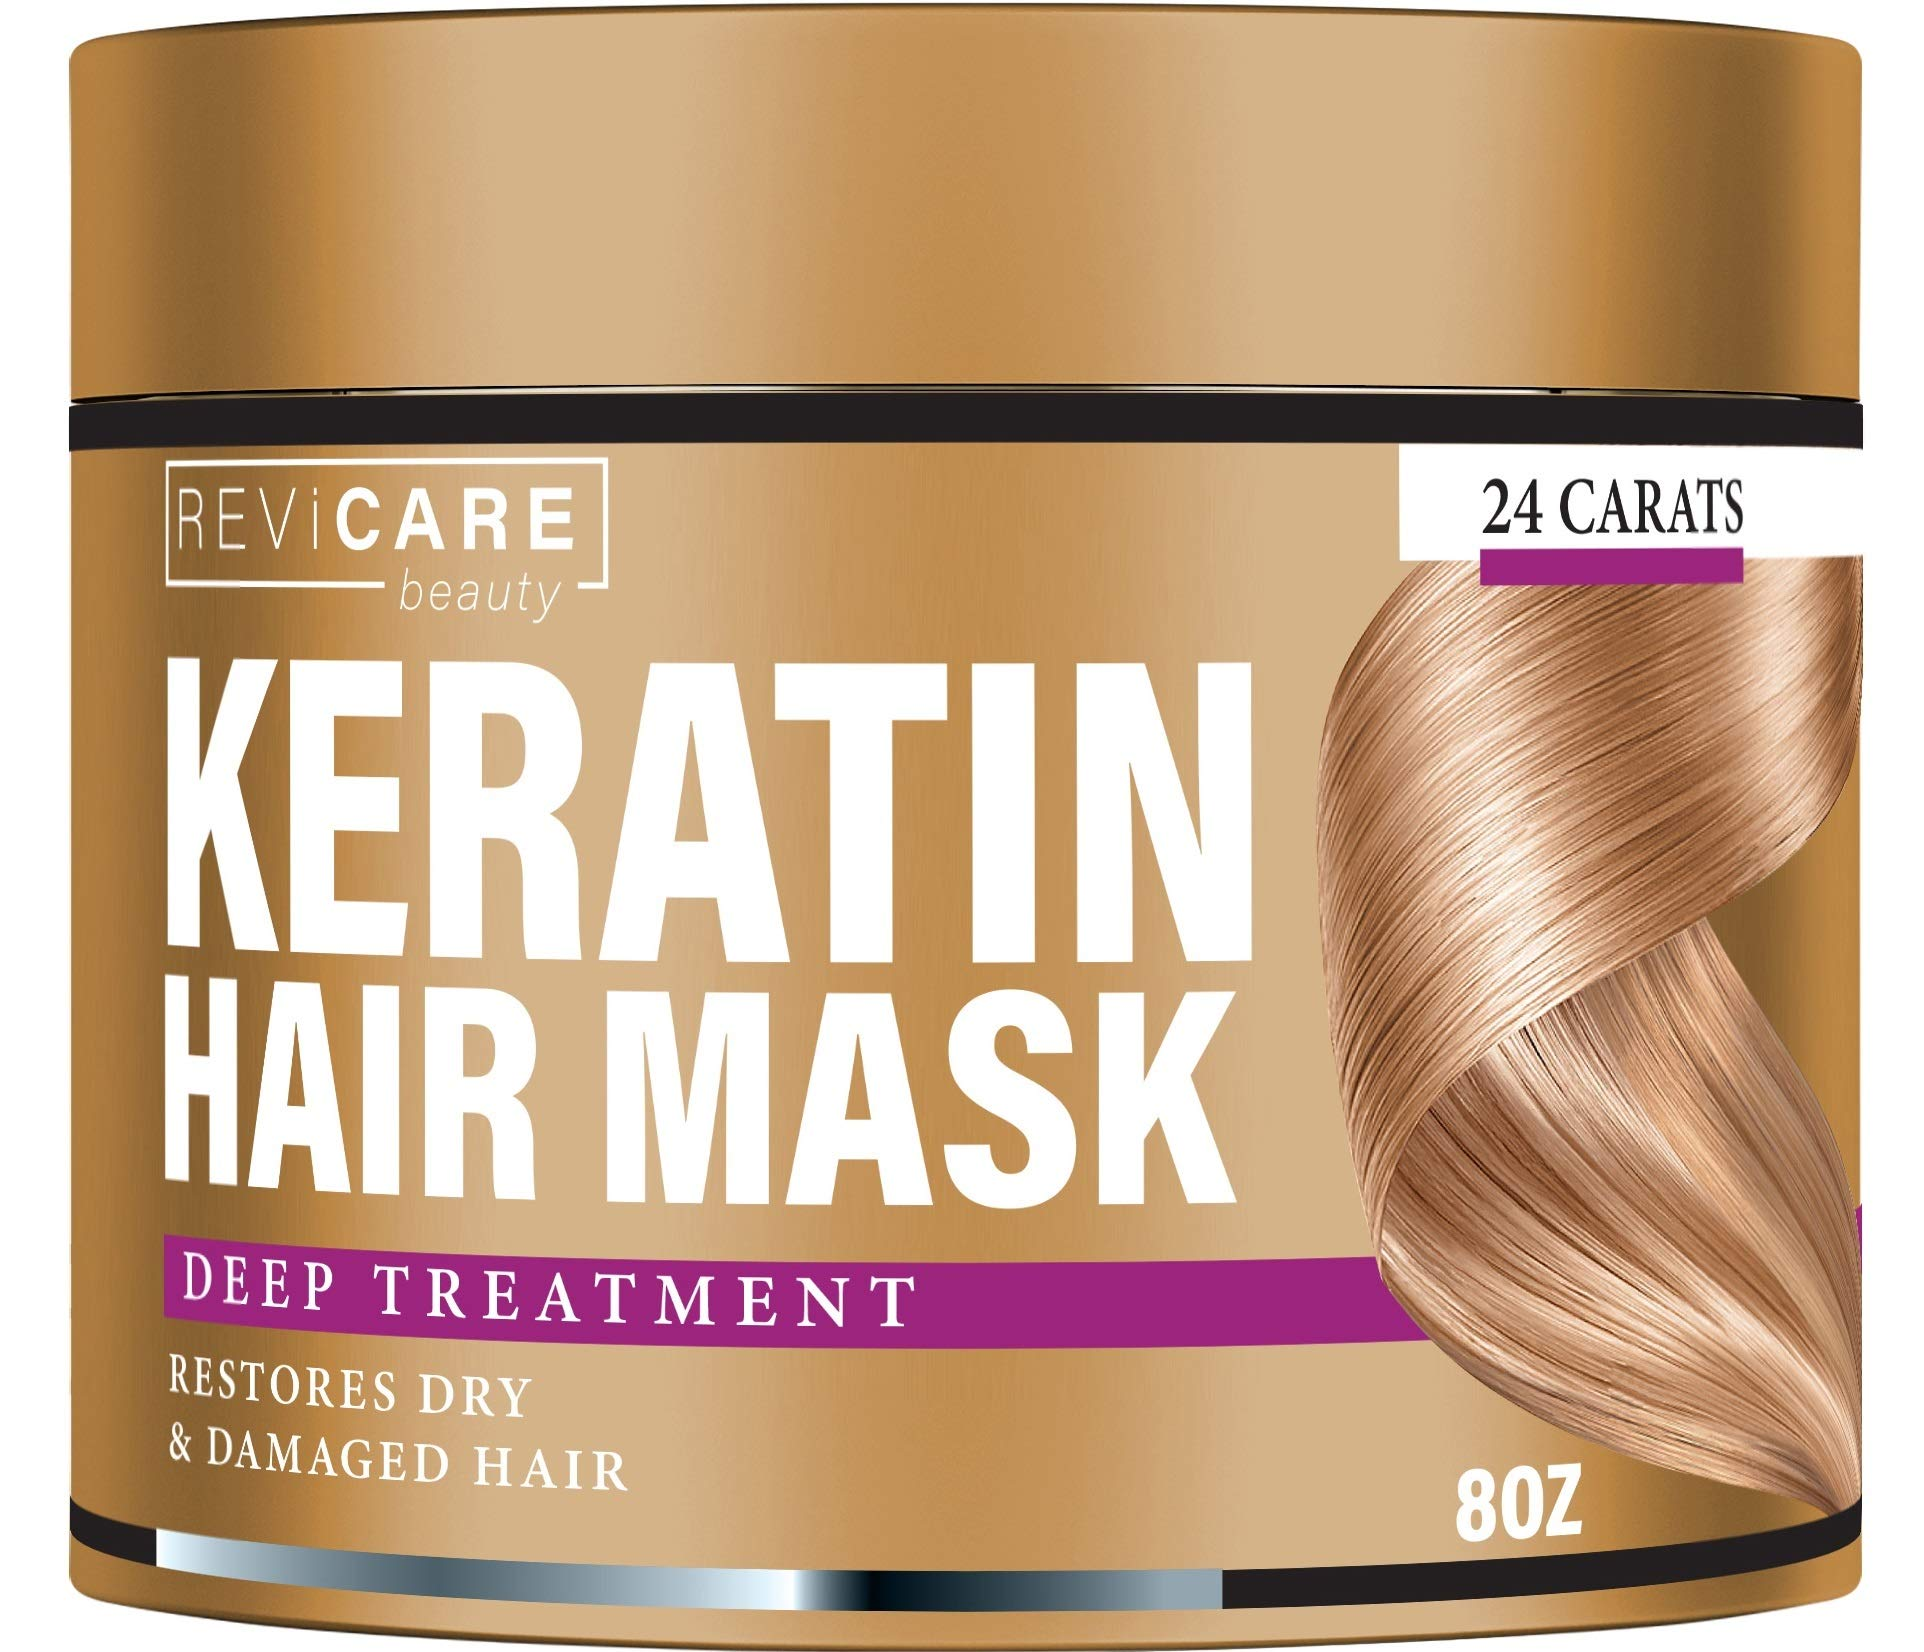 Keratin Hair Mask Effective Moisturizing